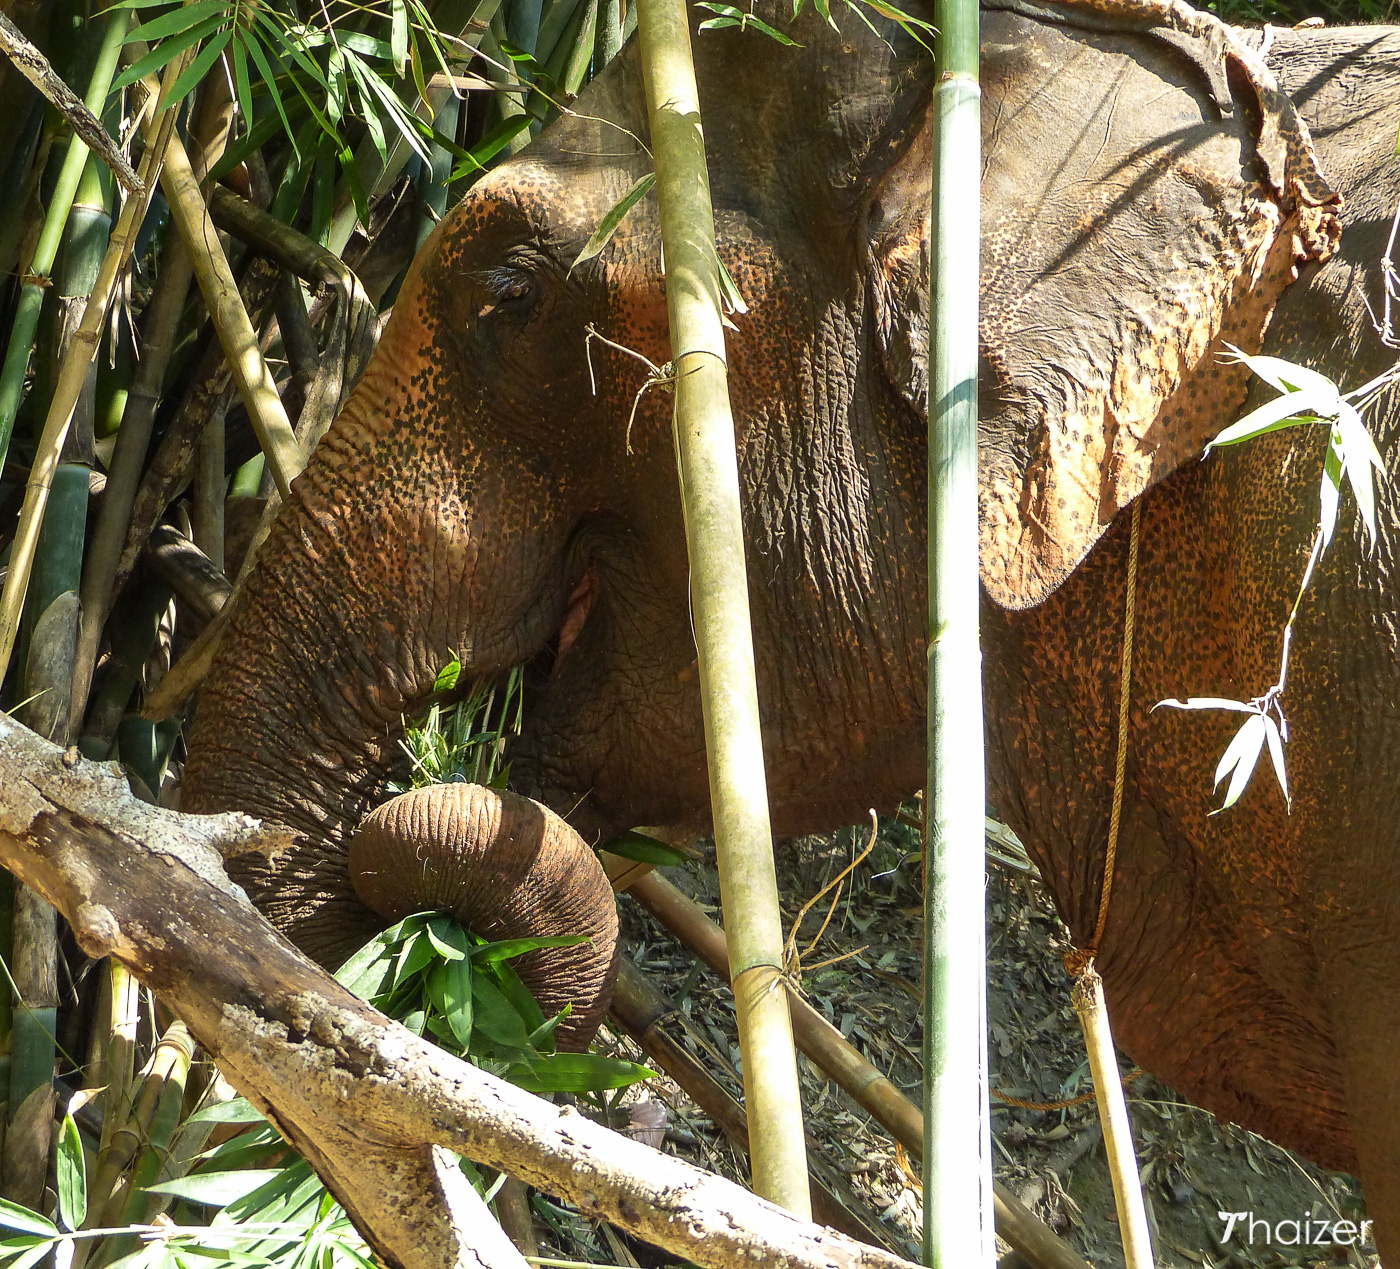 elephant eating bamboo